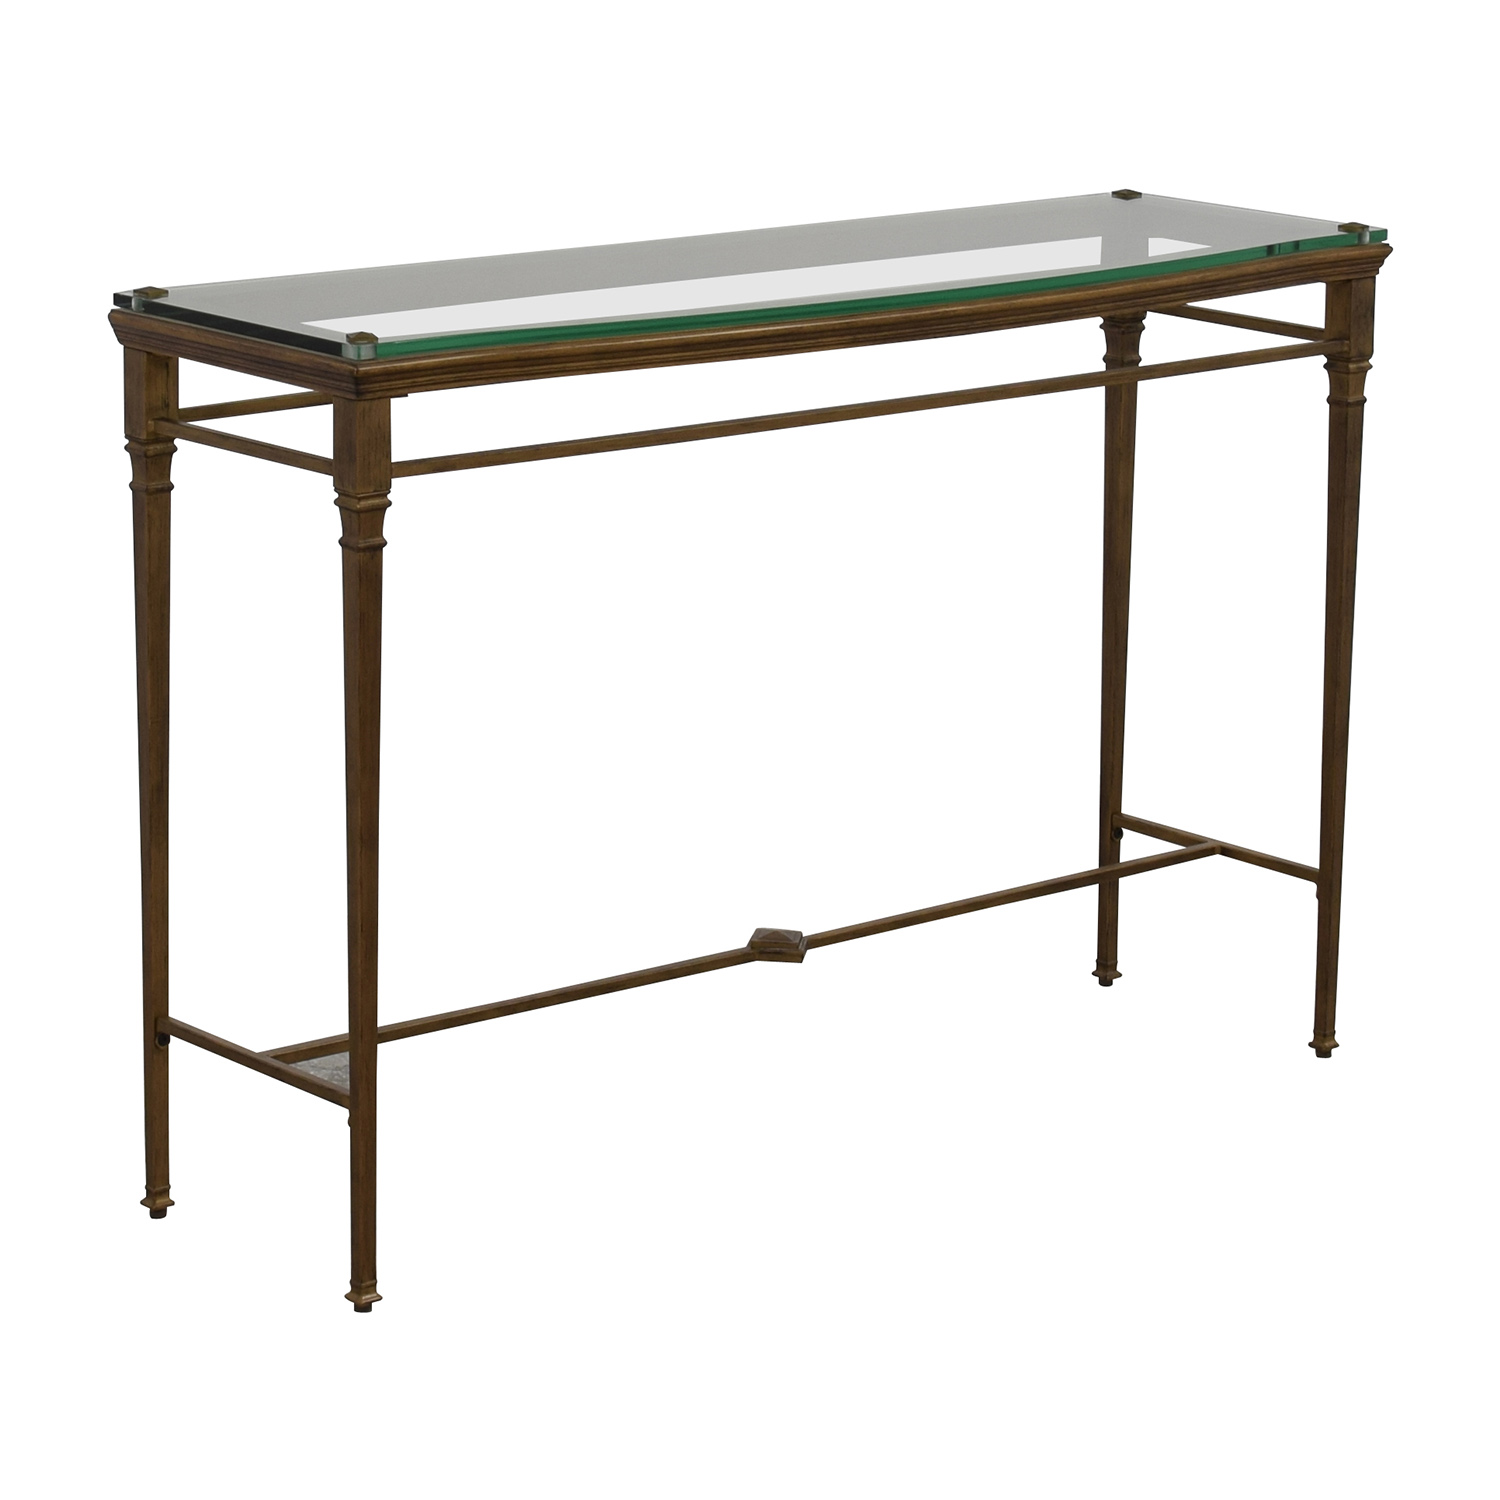 44 Off Pier 1 Pier 1 Foyer Metal And Glass Entry Table